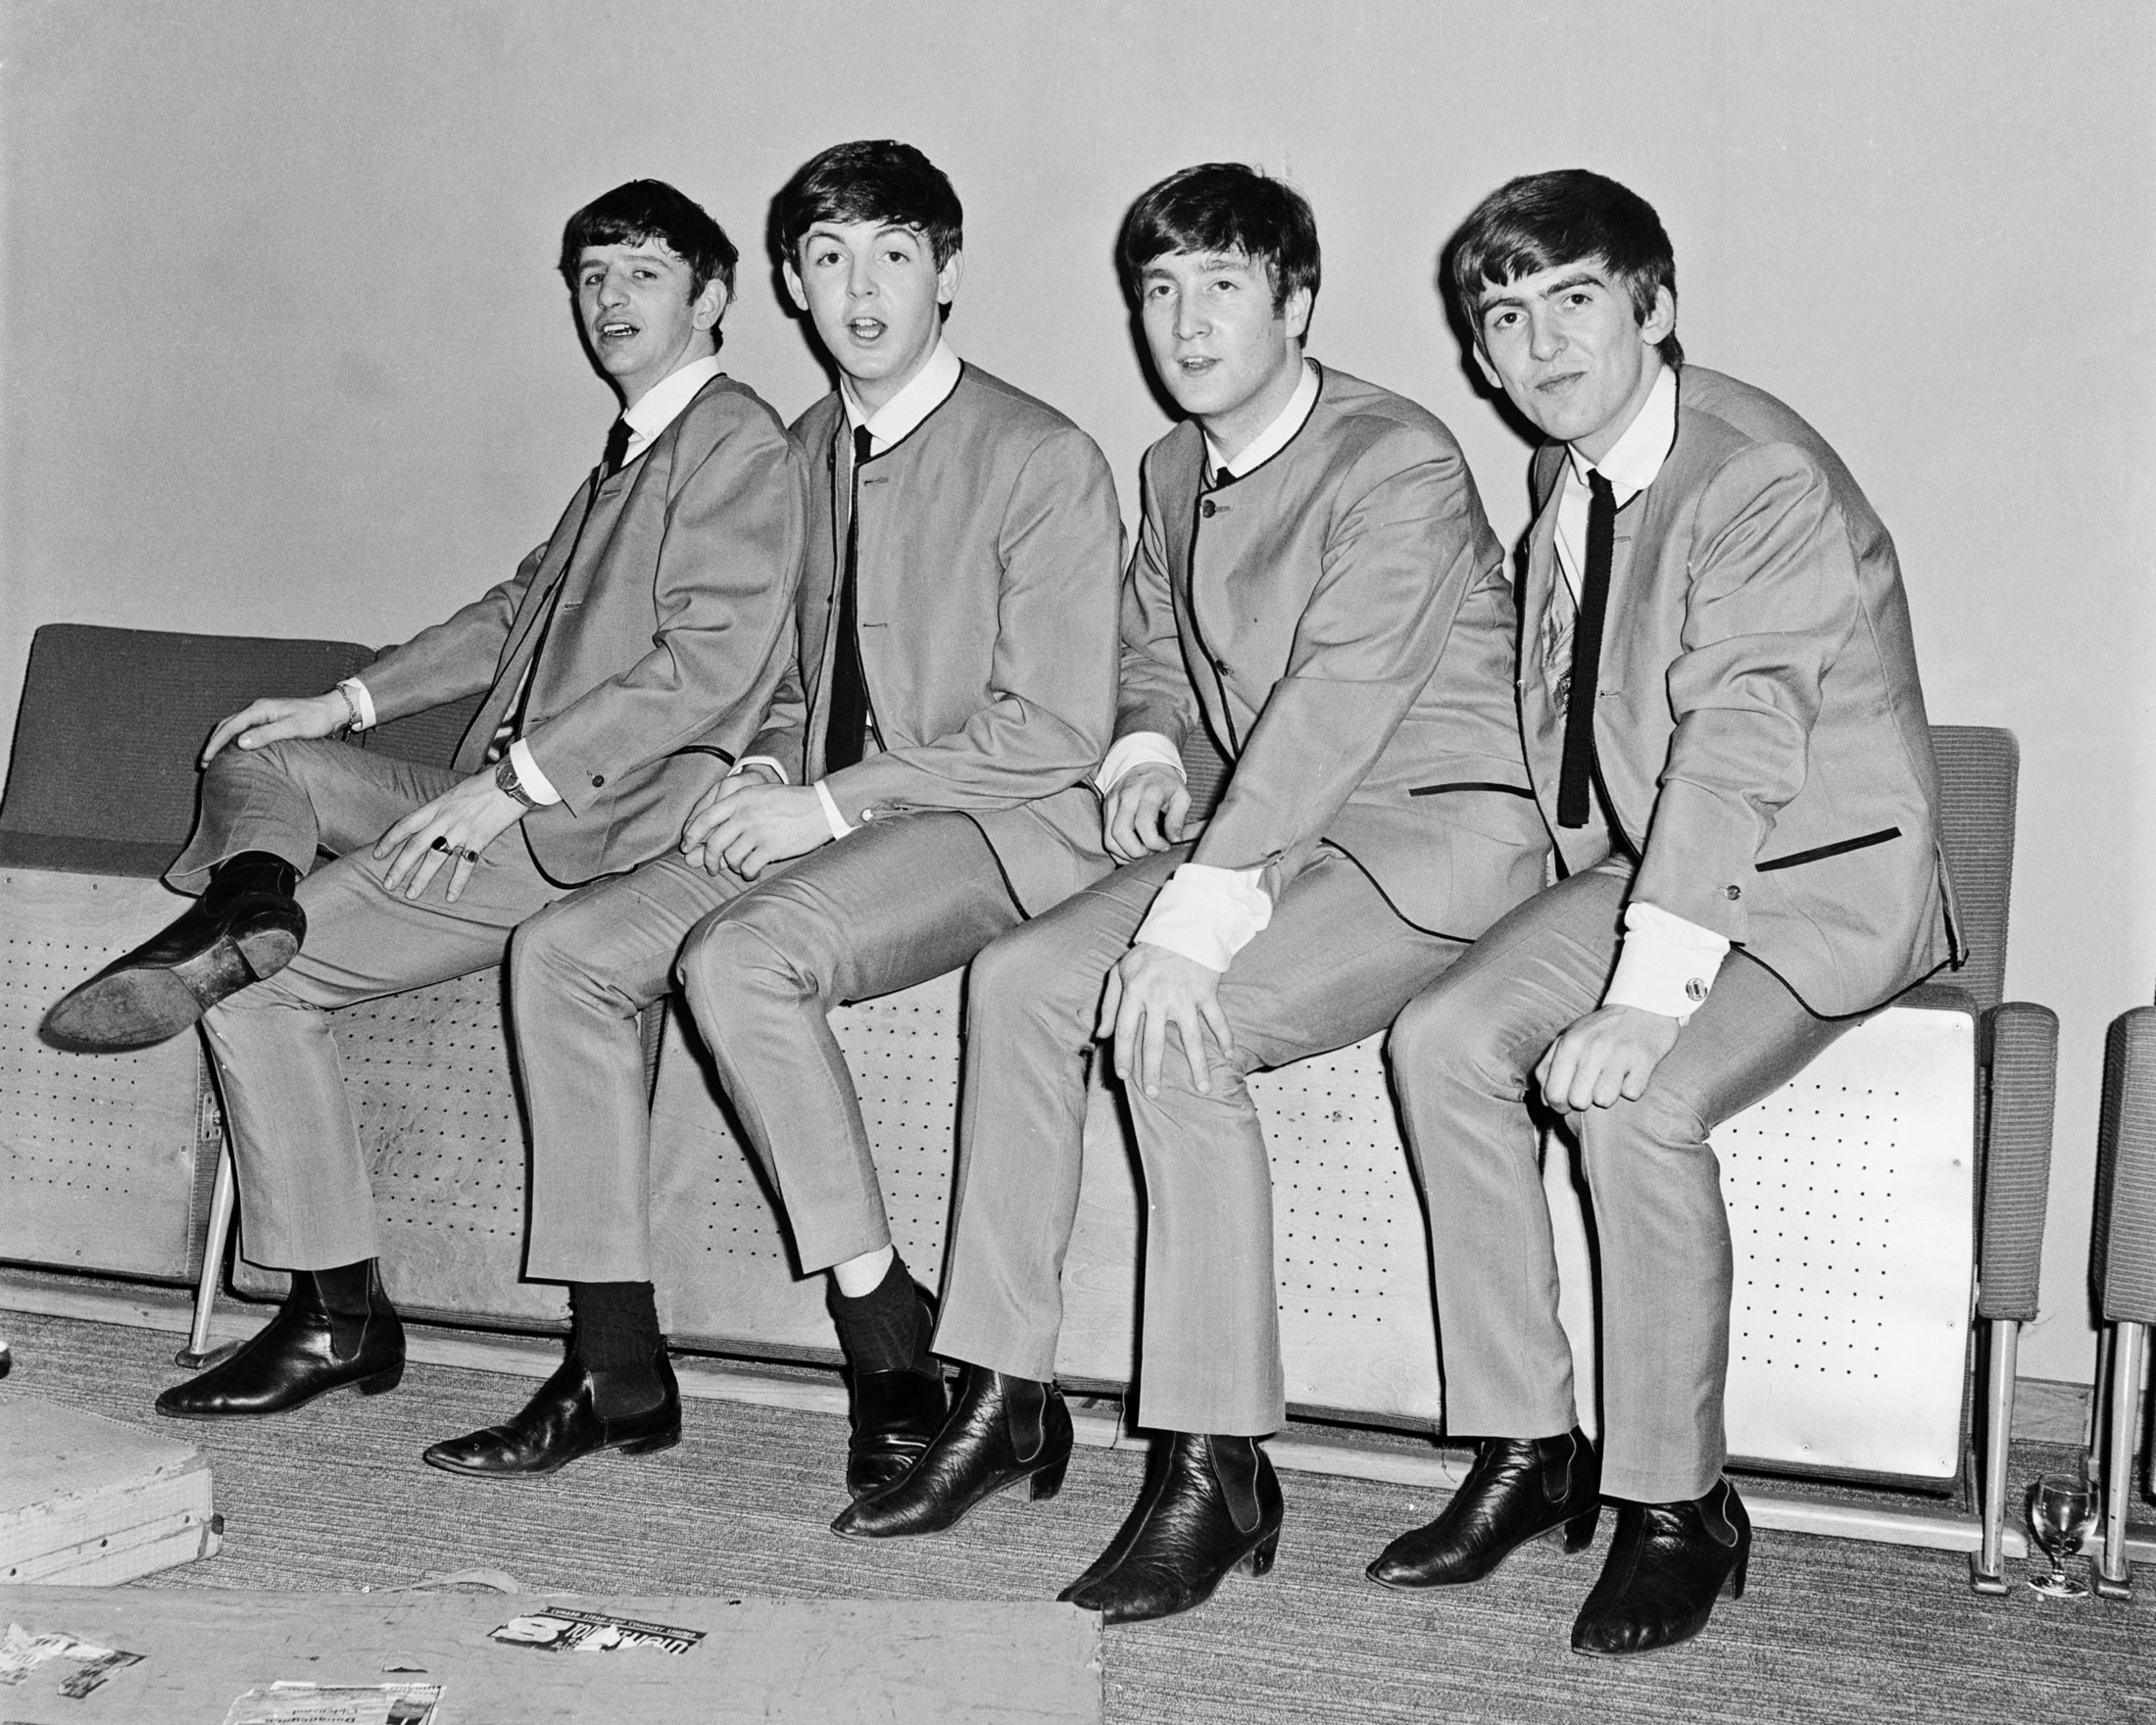 The Beatles in 1963, sporting the Chelsea boot.